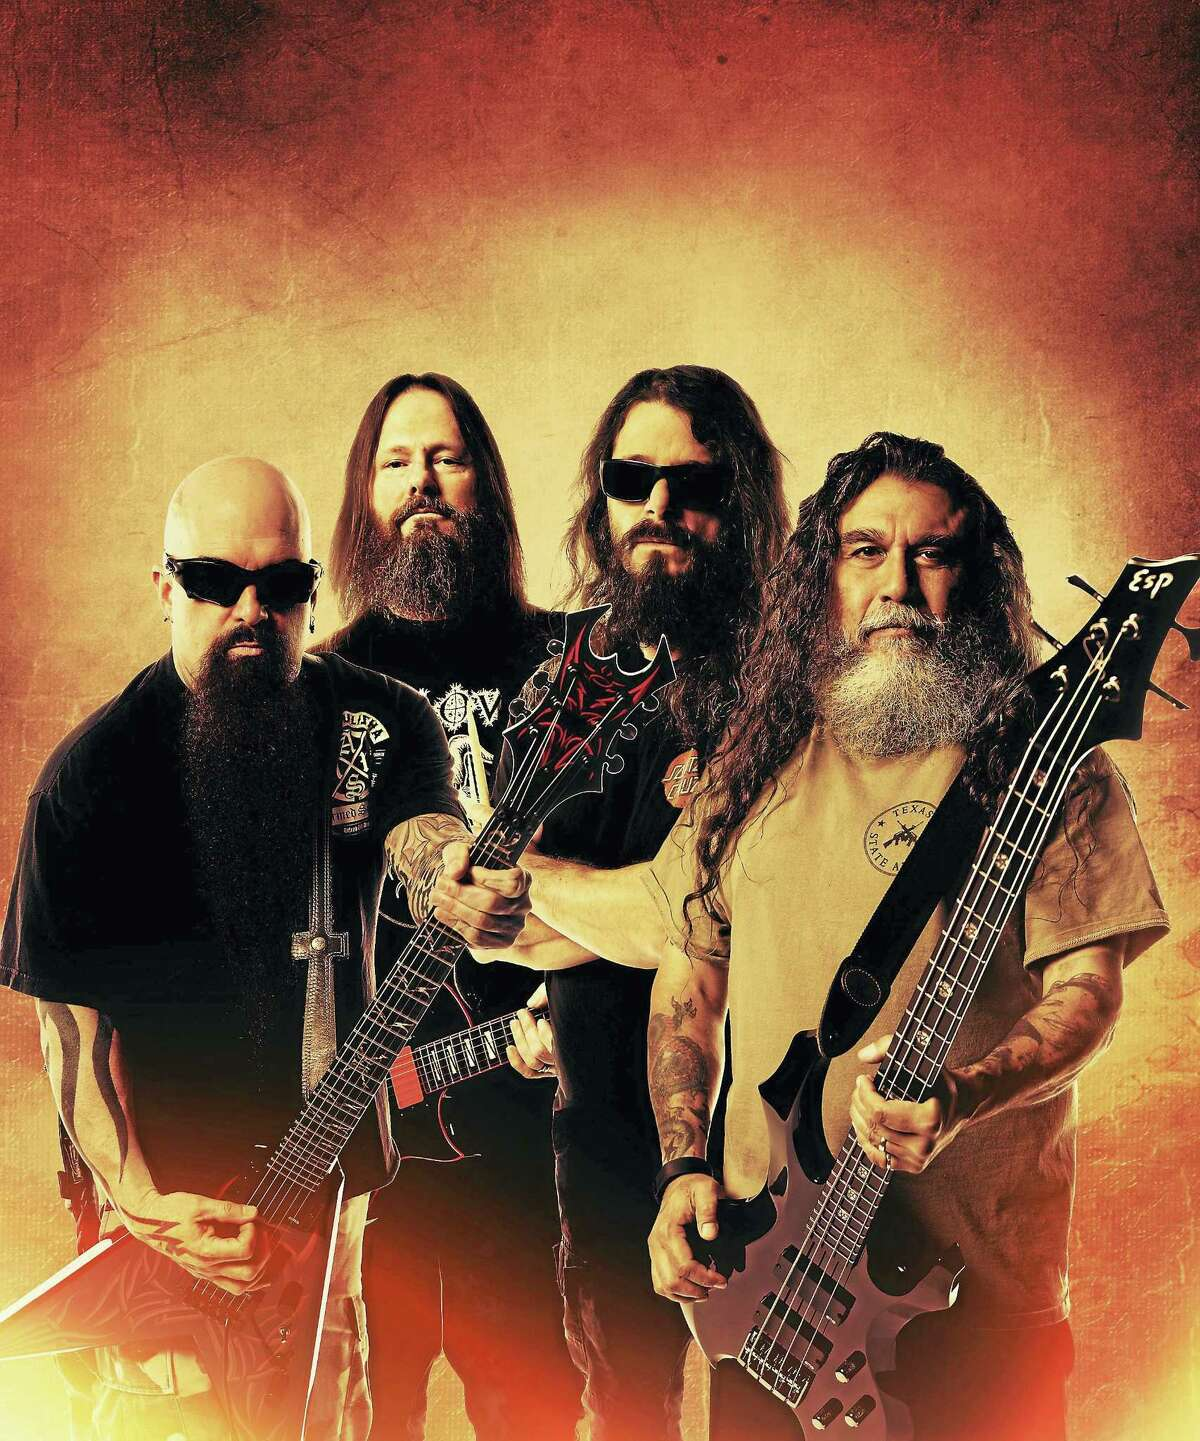 From left, Kerry King, Gary Holt, Paul Bostaph and Tom Araya of Slayer.